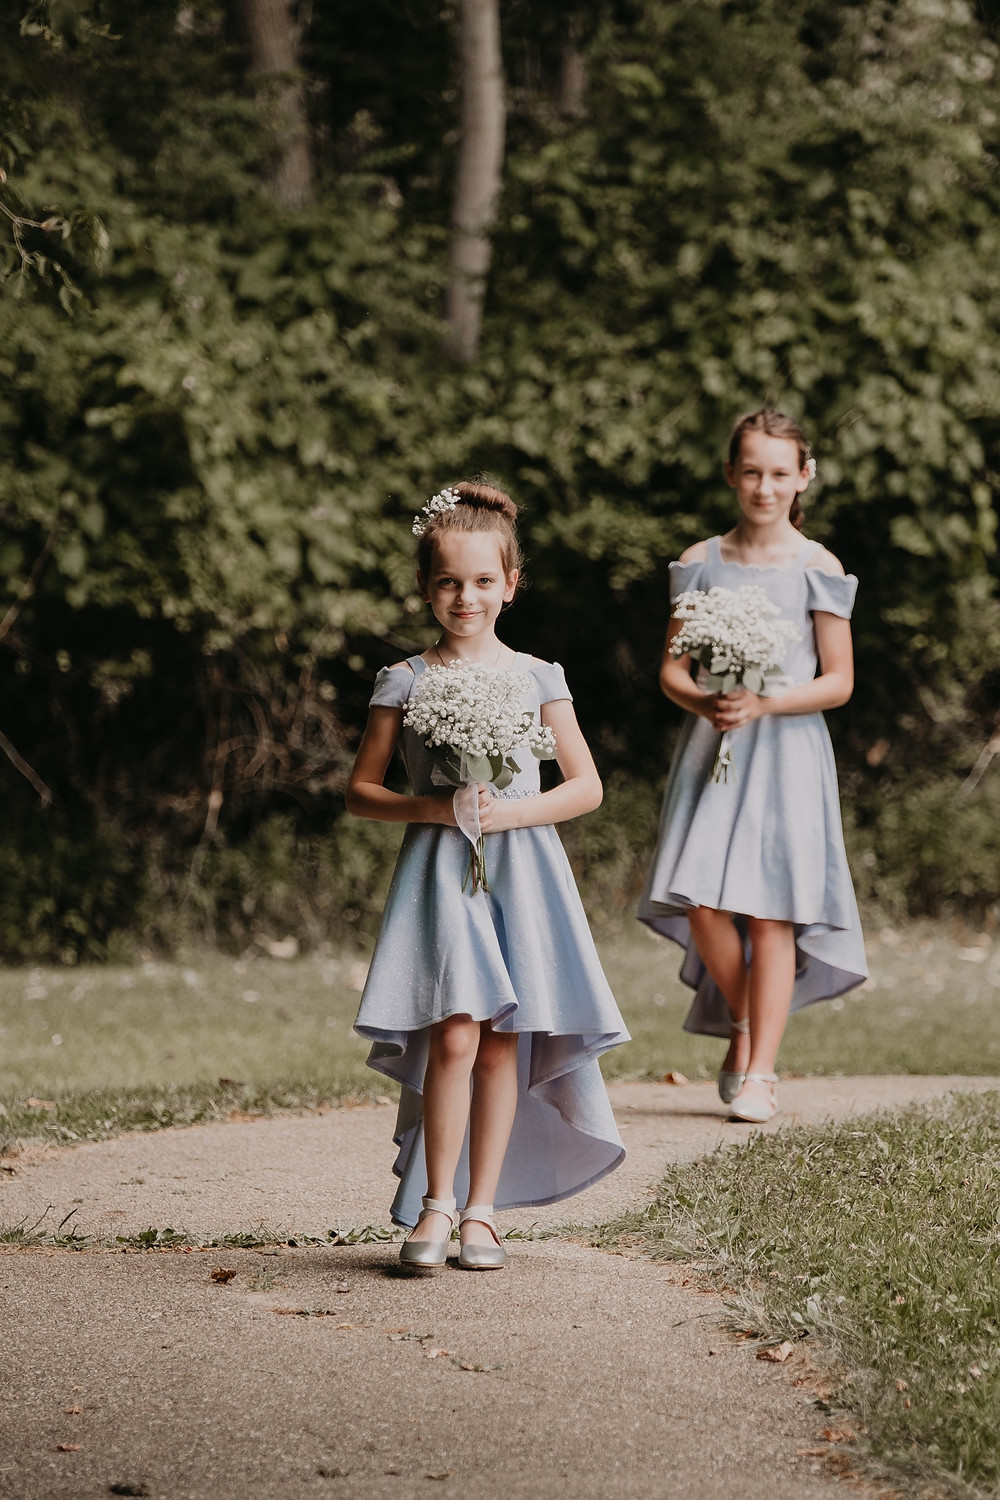 Junior bridesmaids at Metro Detroit wedding. Photographed by Nicole Leanne Photography.